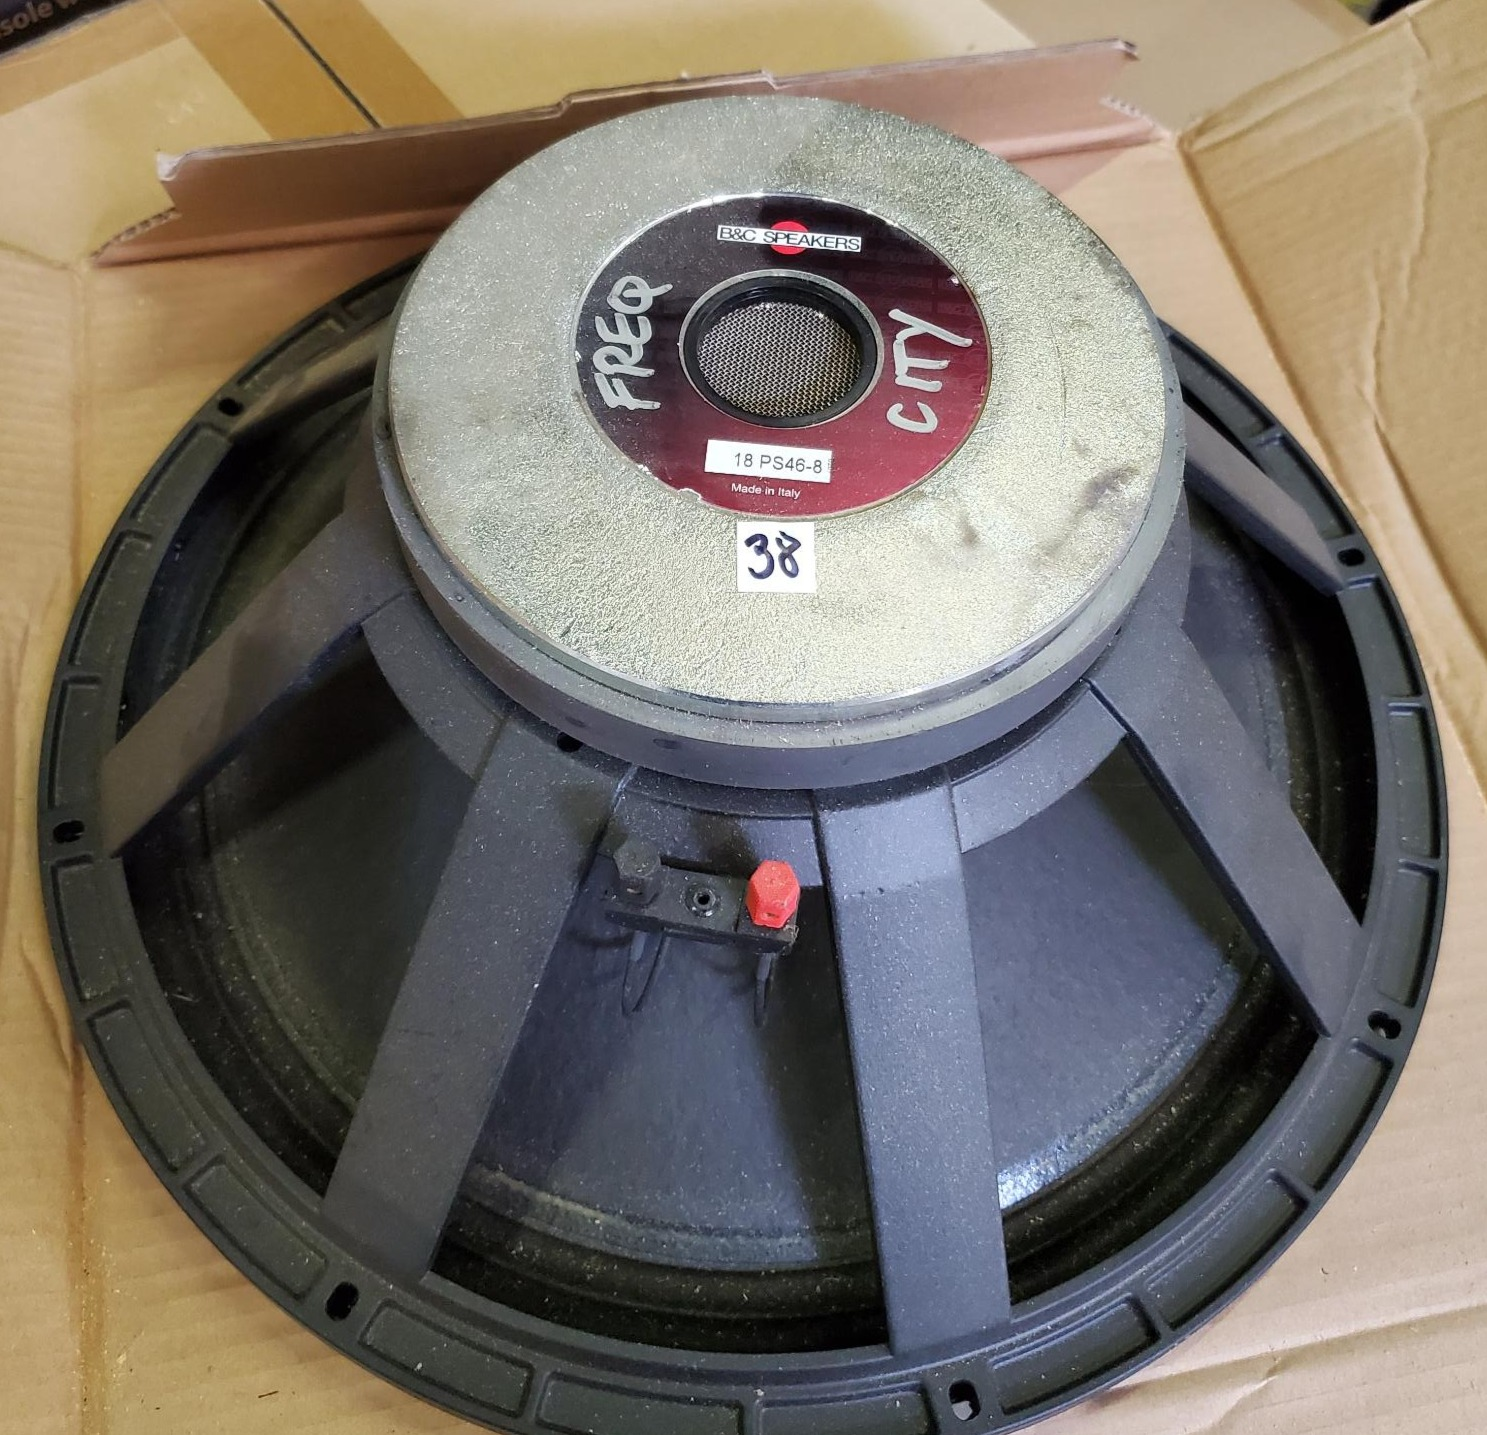 "Long excursion 18"" woofer with 700 watts RMS power handling for subwoofer applications where reproduction of the lowest frequencies is mandatory."